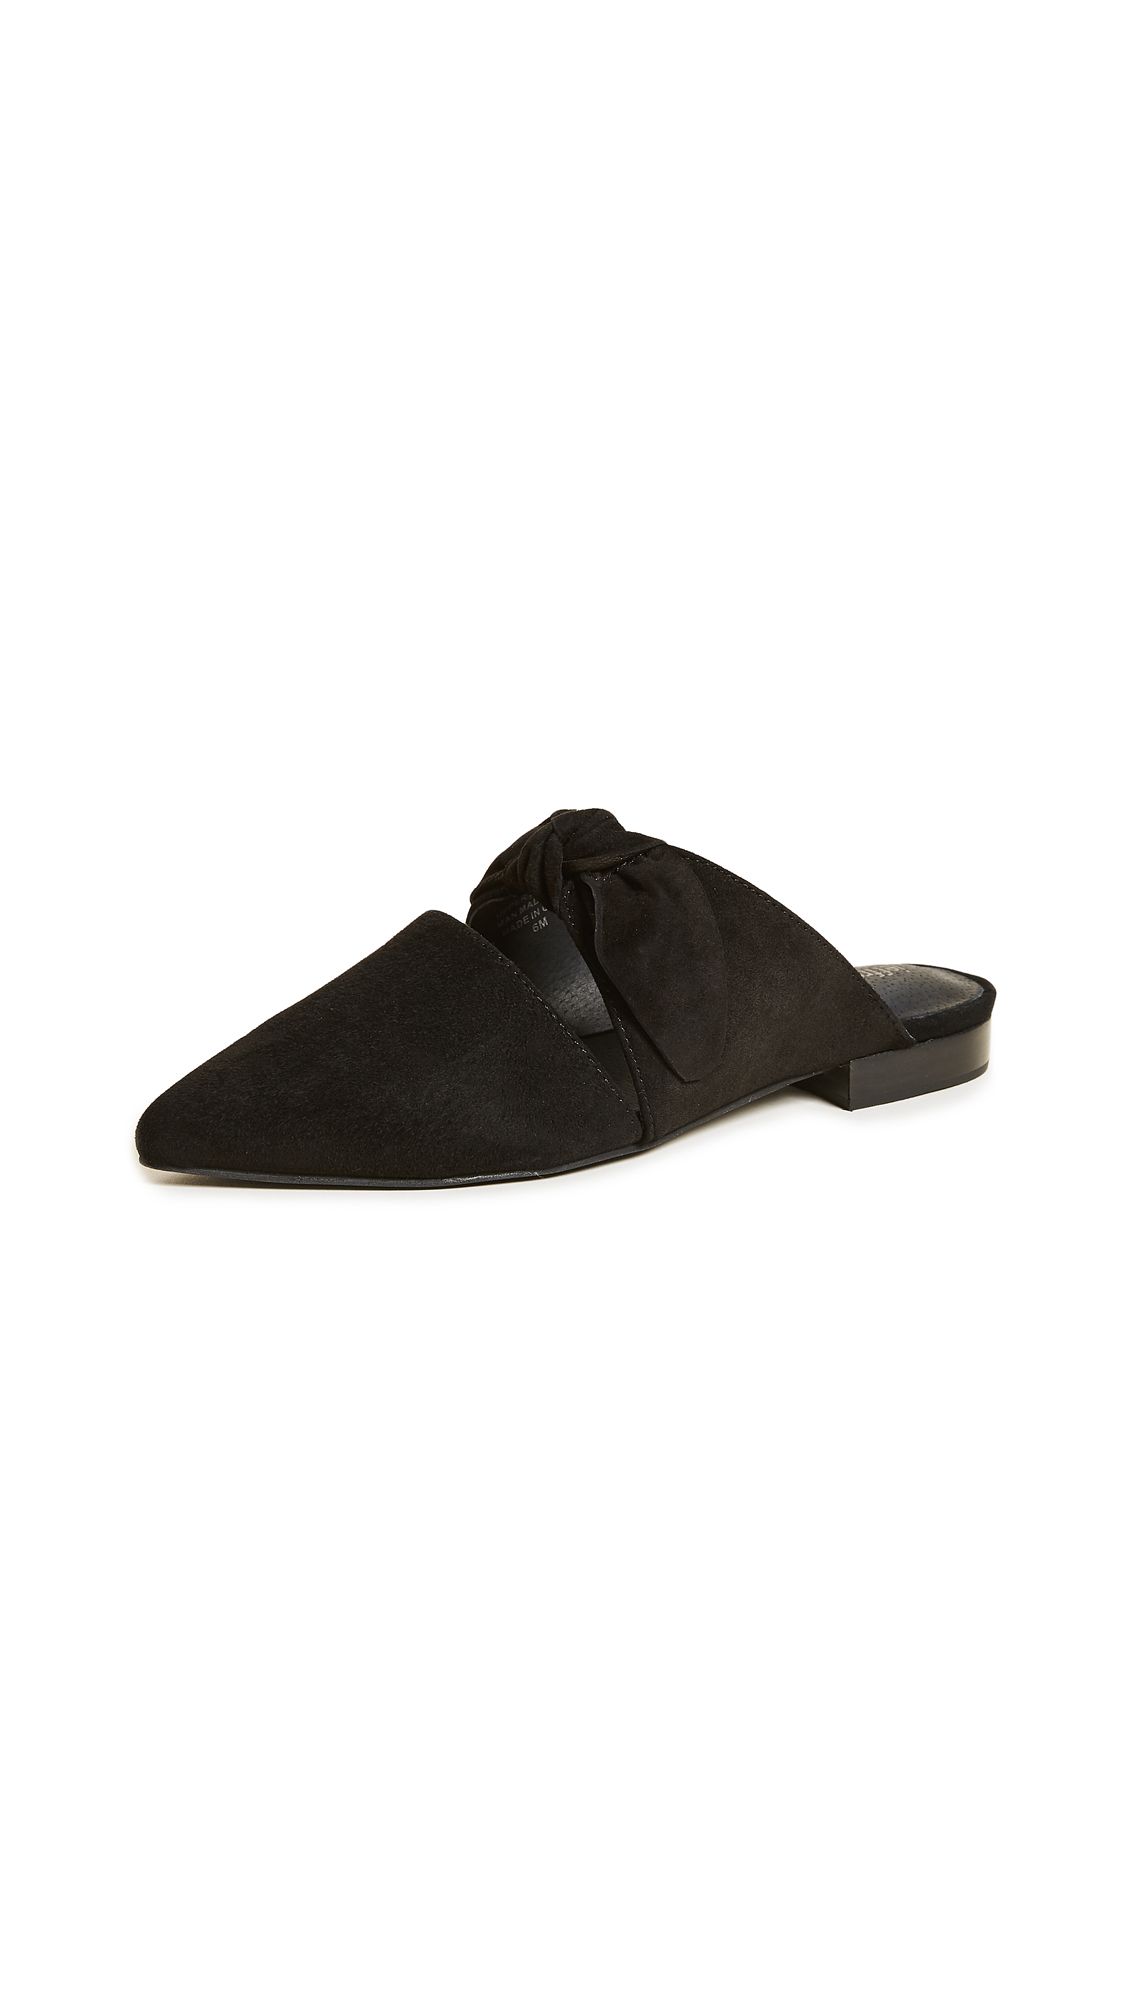 Jeffrey Campbell Charlin Point Toe Mules - Black